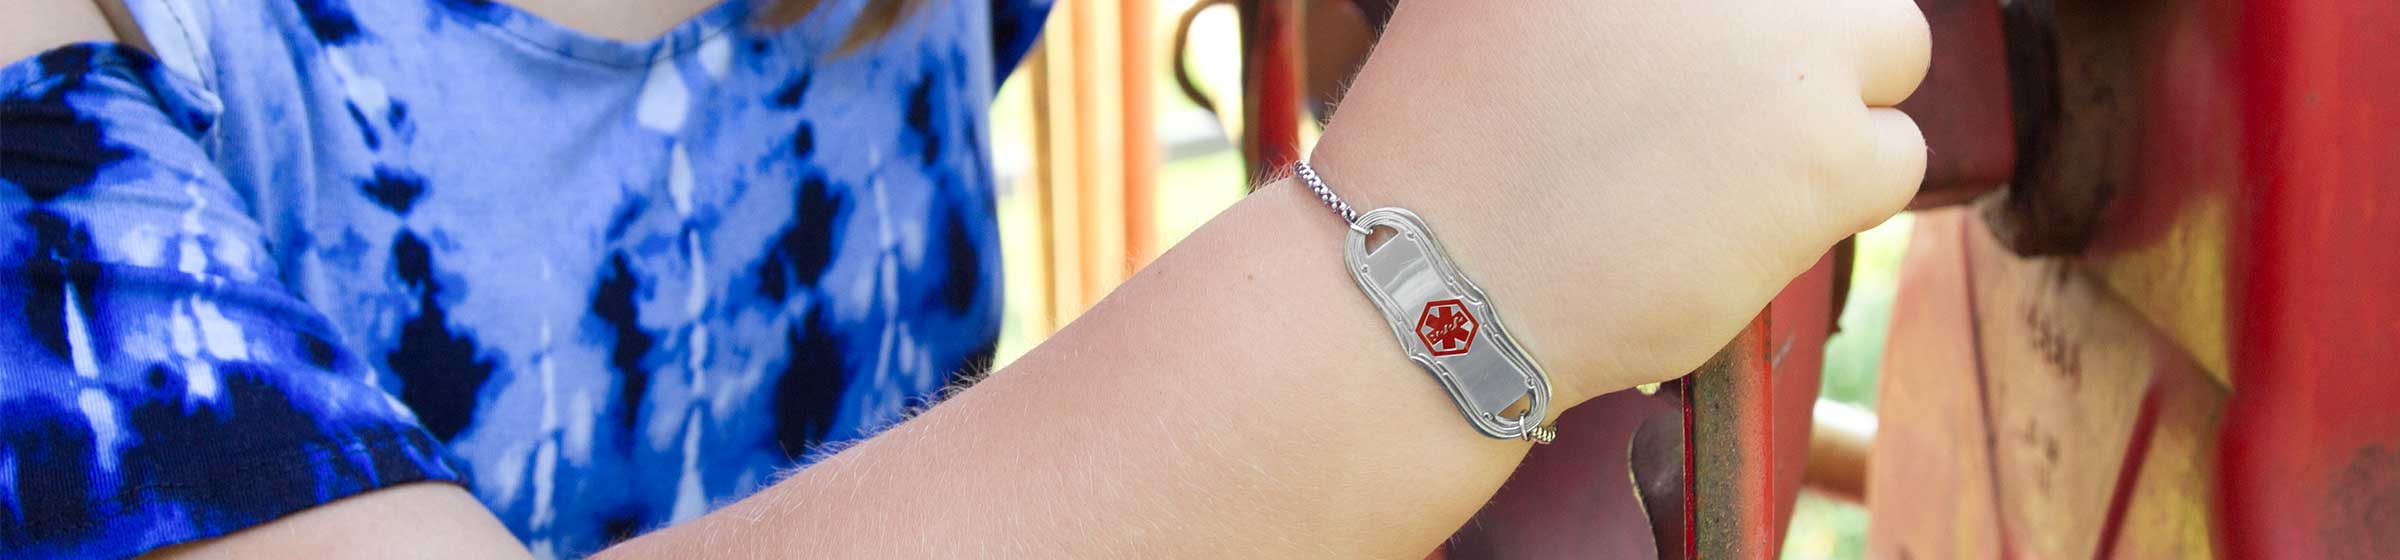 Medical ID Bracelets For Morphine Allergy